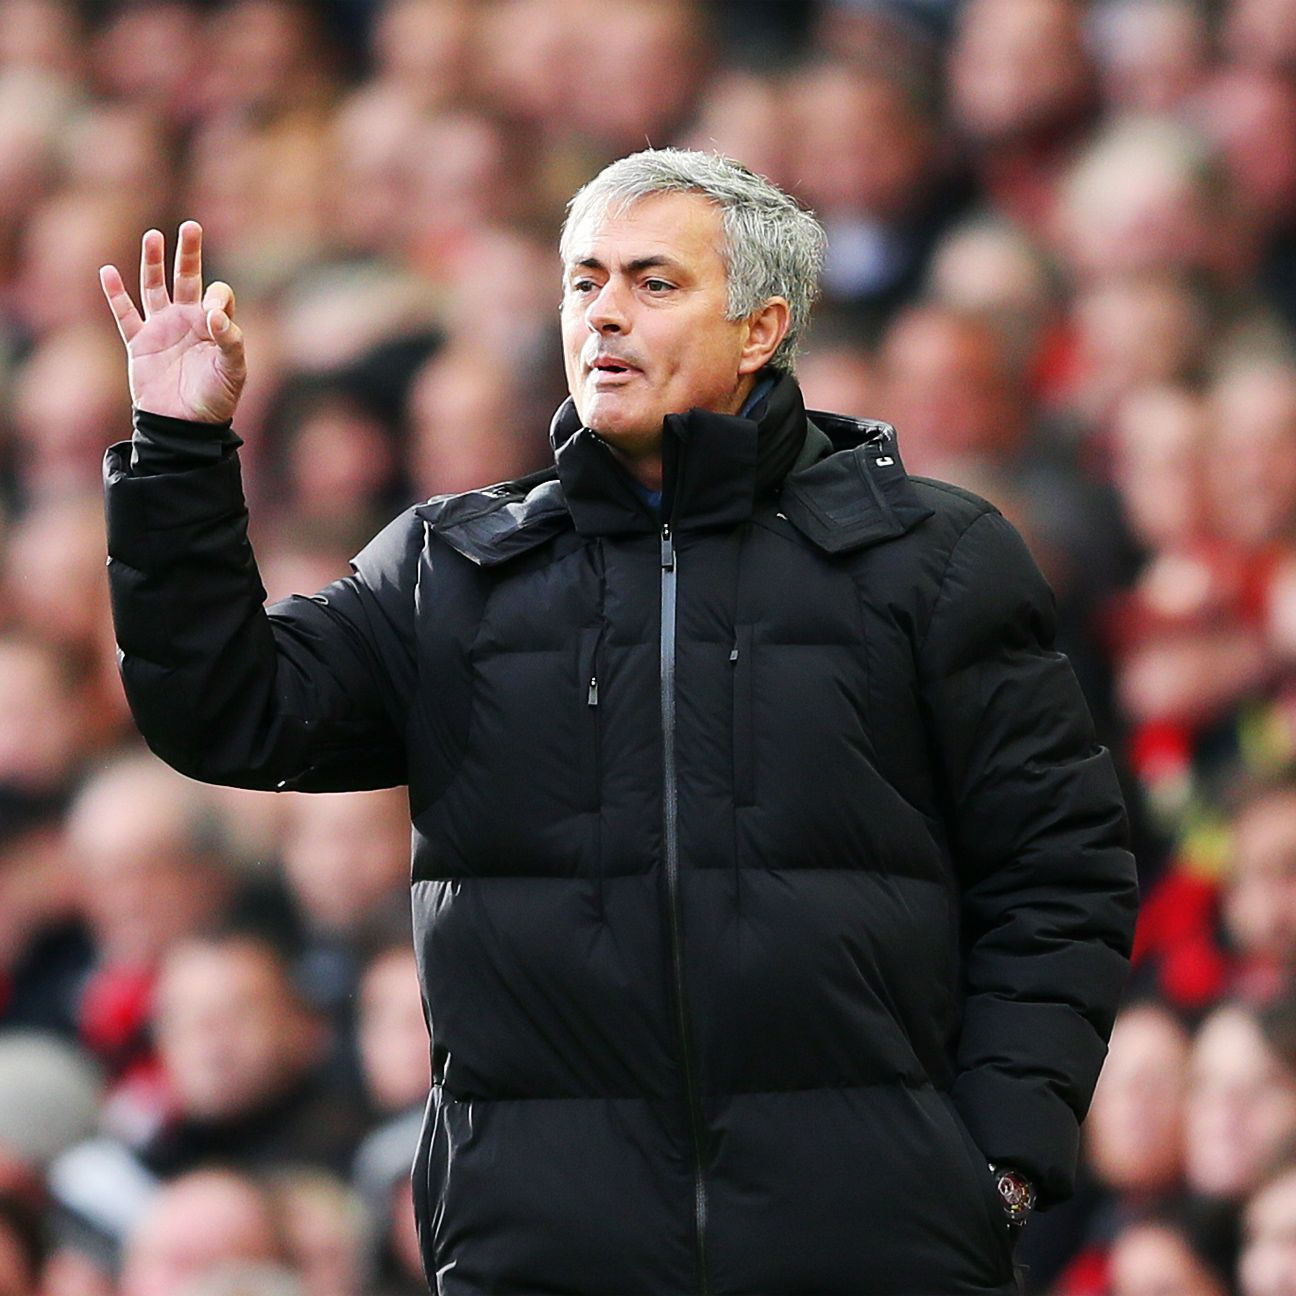 In his second season back in charge of Chelsea, the Special One has won his third Premier League title.